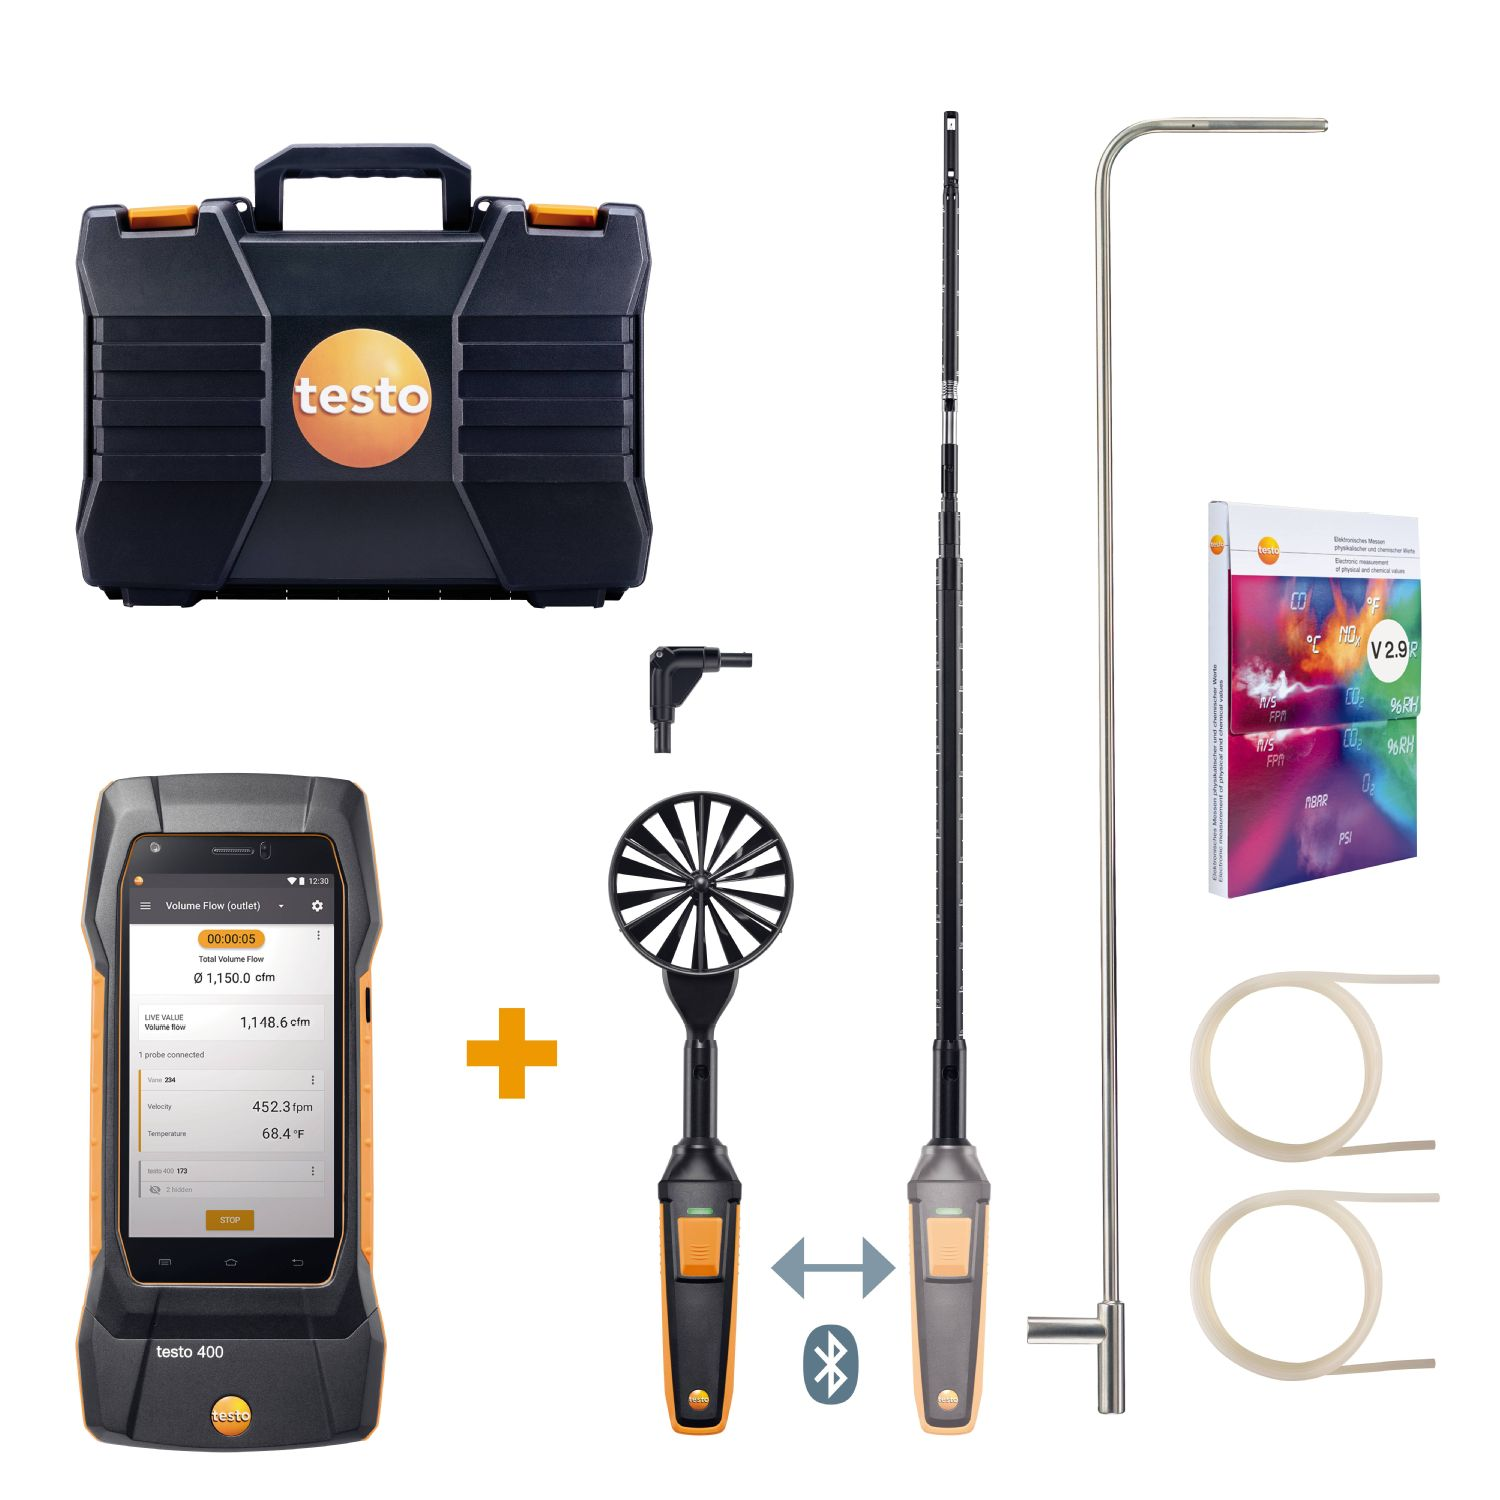 testo-400-Airflow-Kit-US.jpg